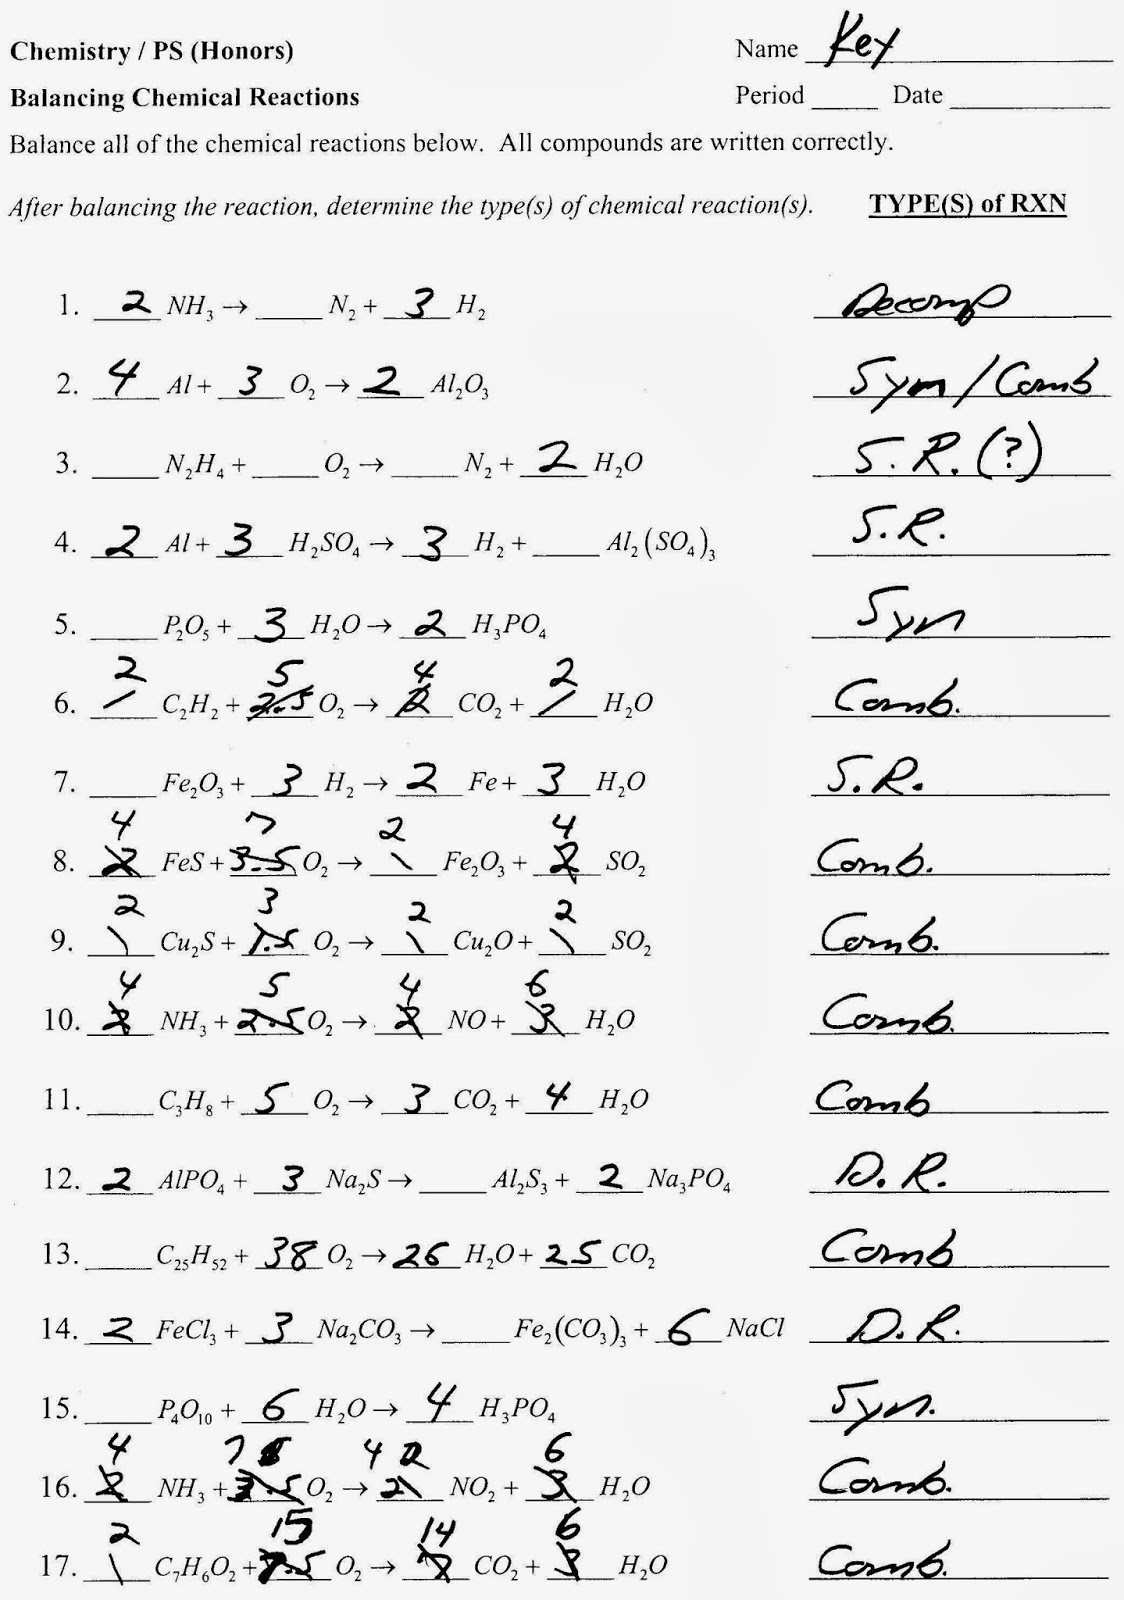 Aldiablosus  Terrific Balancing Chemical Equations Worksheets Balancing Chemical  With Foxy Balancing Chemical Equations Worksheet Answer Key On Chemistry Double With Awesome English Ks Worksheets Also Math For Grade  Worksheets In Addition Logarithm Practice Worksheets And Free Worksheets For Children As Well As Protecting Worksheets In Excel Additionally Change Mixed Number To Improper Fraction Worksheet From Letstalkhiphopus With Aldiablosus  Foxy Balancing Chemical Equations Worksheets Balancing Chemical  With Awesome Balancing Chemical Equations Worksheet Answer Key On Chemistry Double And Terrific English Ks Worksheets Also Math For Grade  Worksheets In Addition Logarithm Practice Worksheets From Letstalkhiphopus